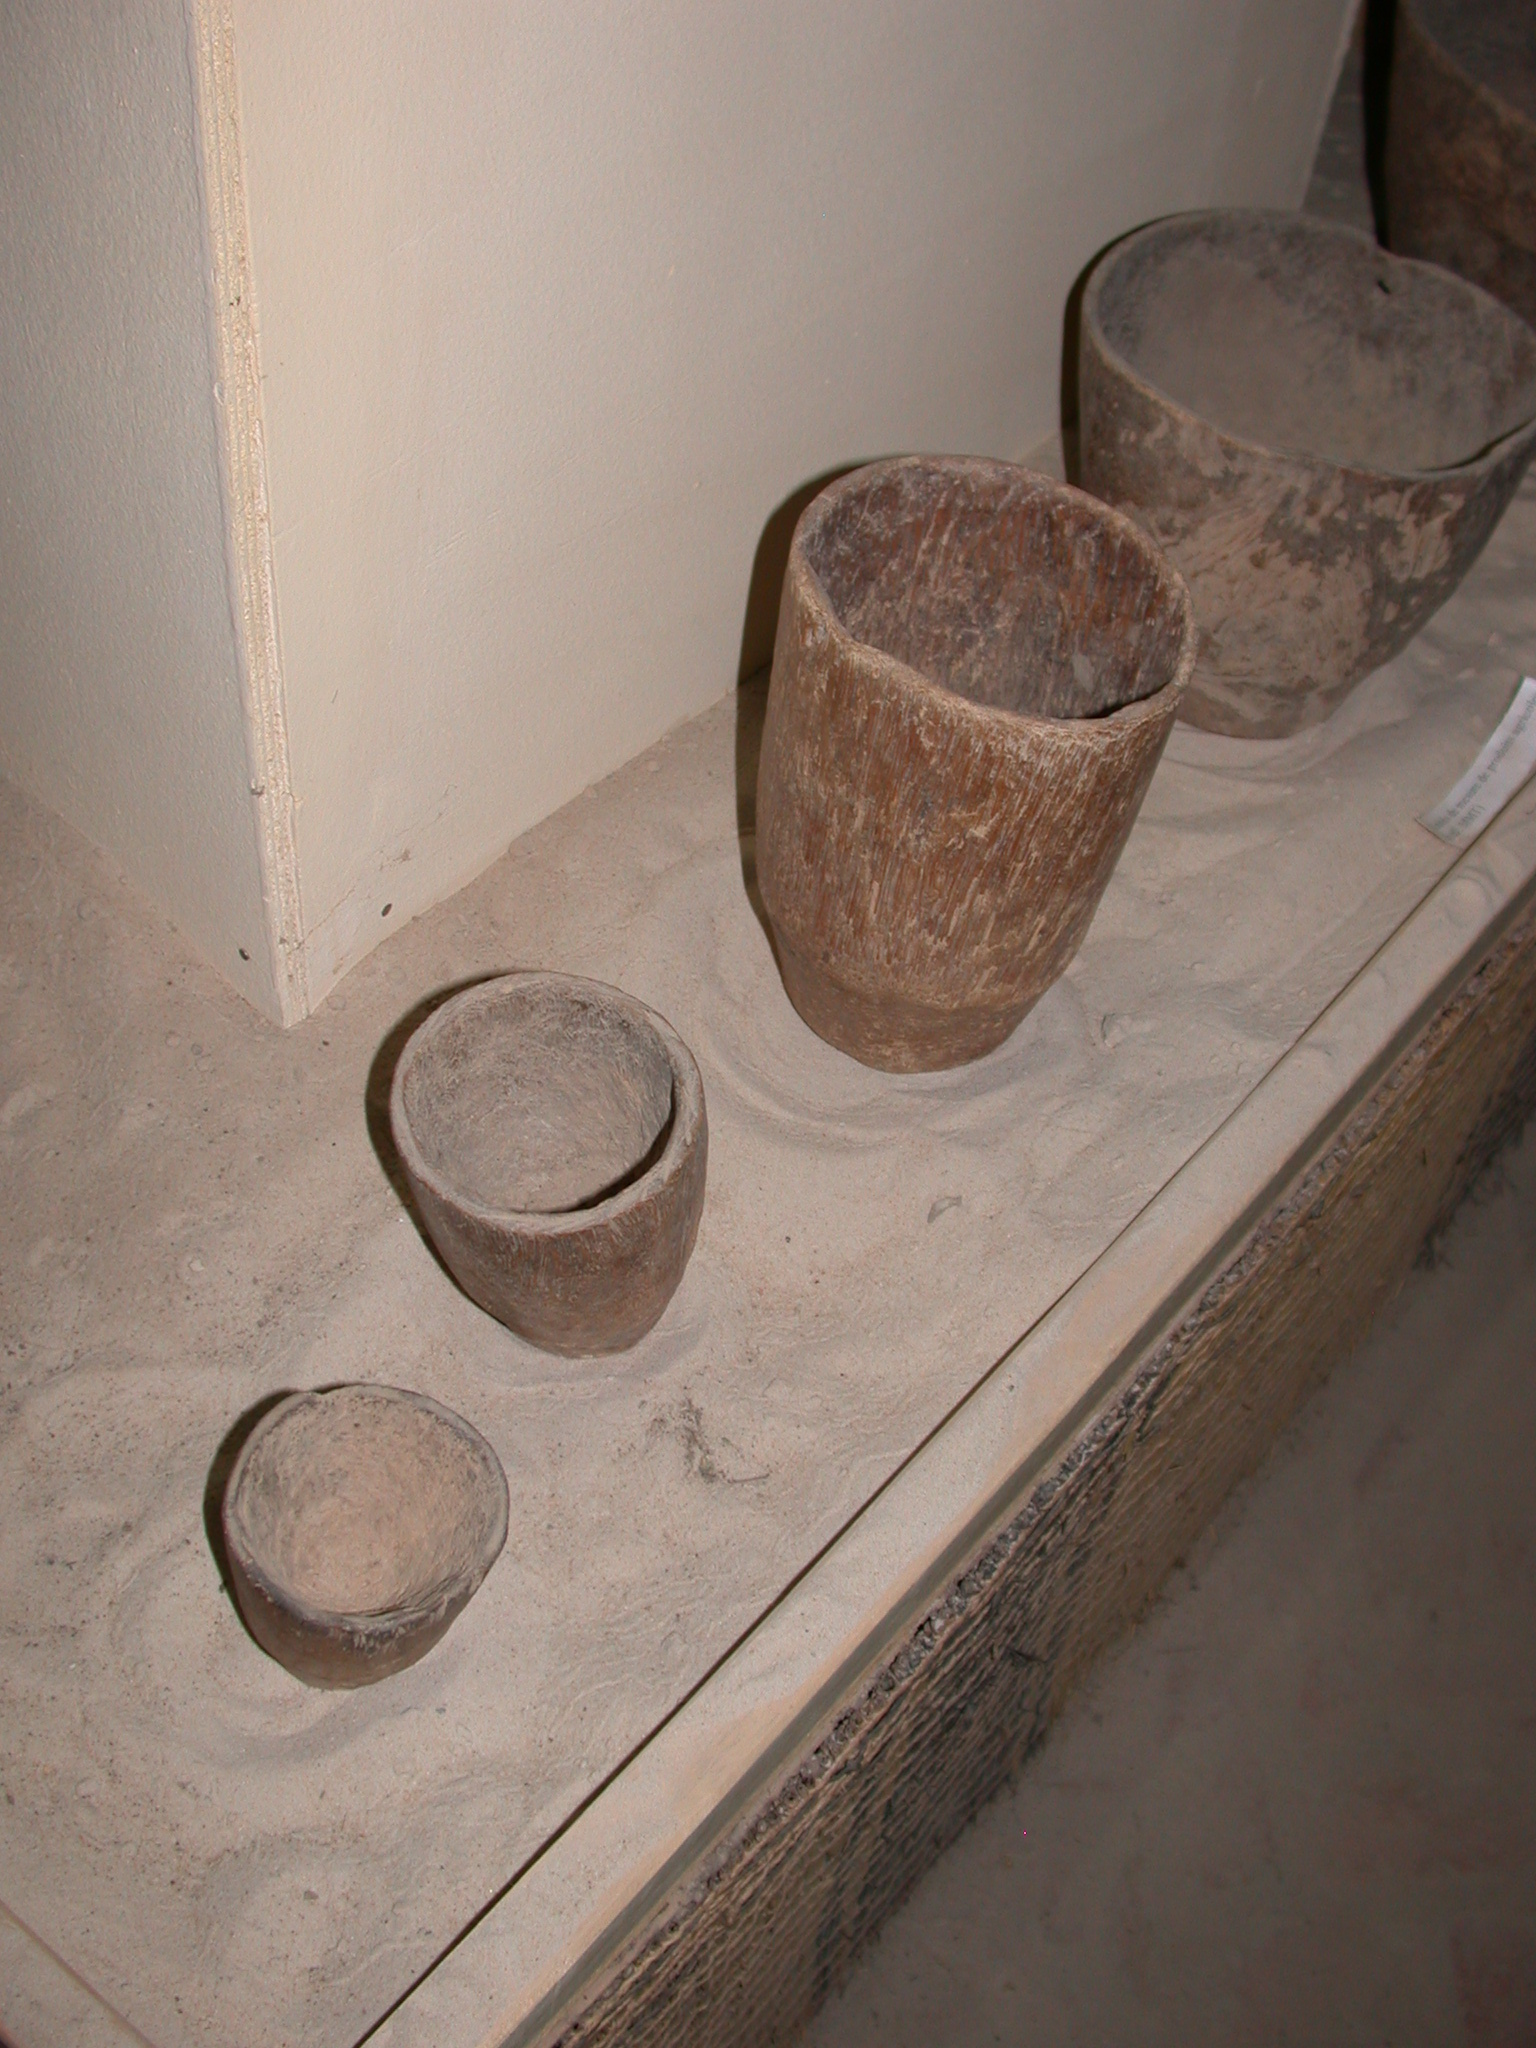 Units of Measure for Agricultural Products, Timbuktu Ethnological Museum, Timbuktu, Mali